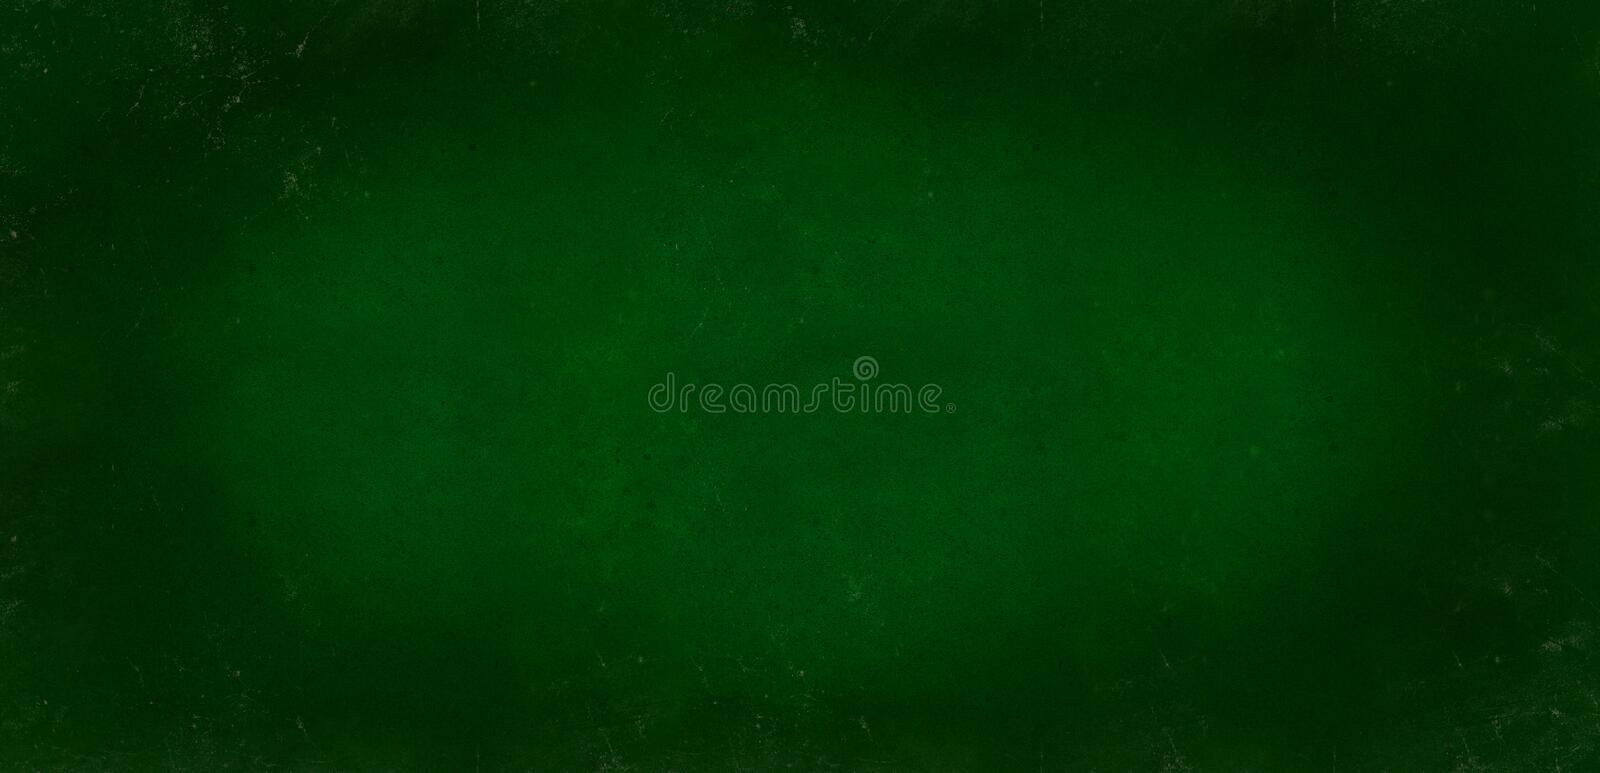 Dark green background of school blackboard colored vignetted texture. Dark green black shabby texture. Long format royalty free stock photography